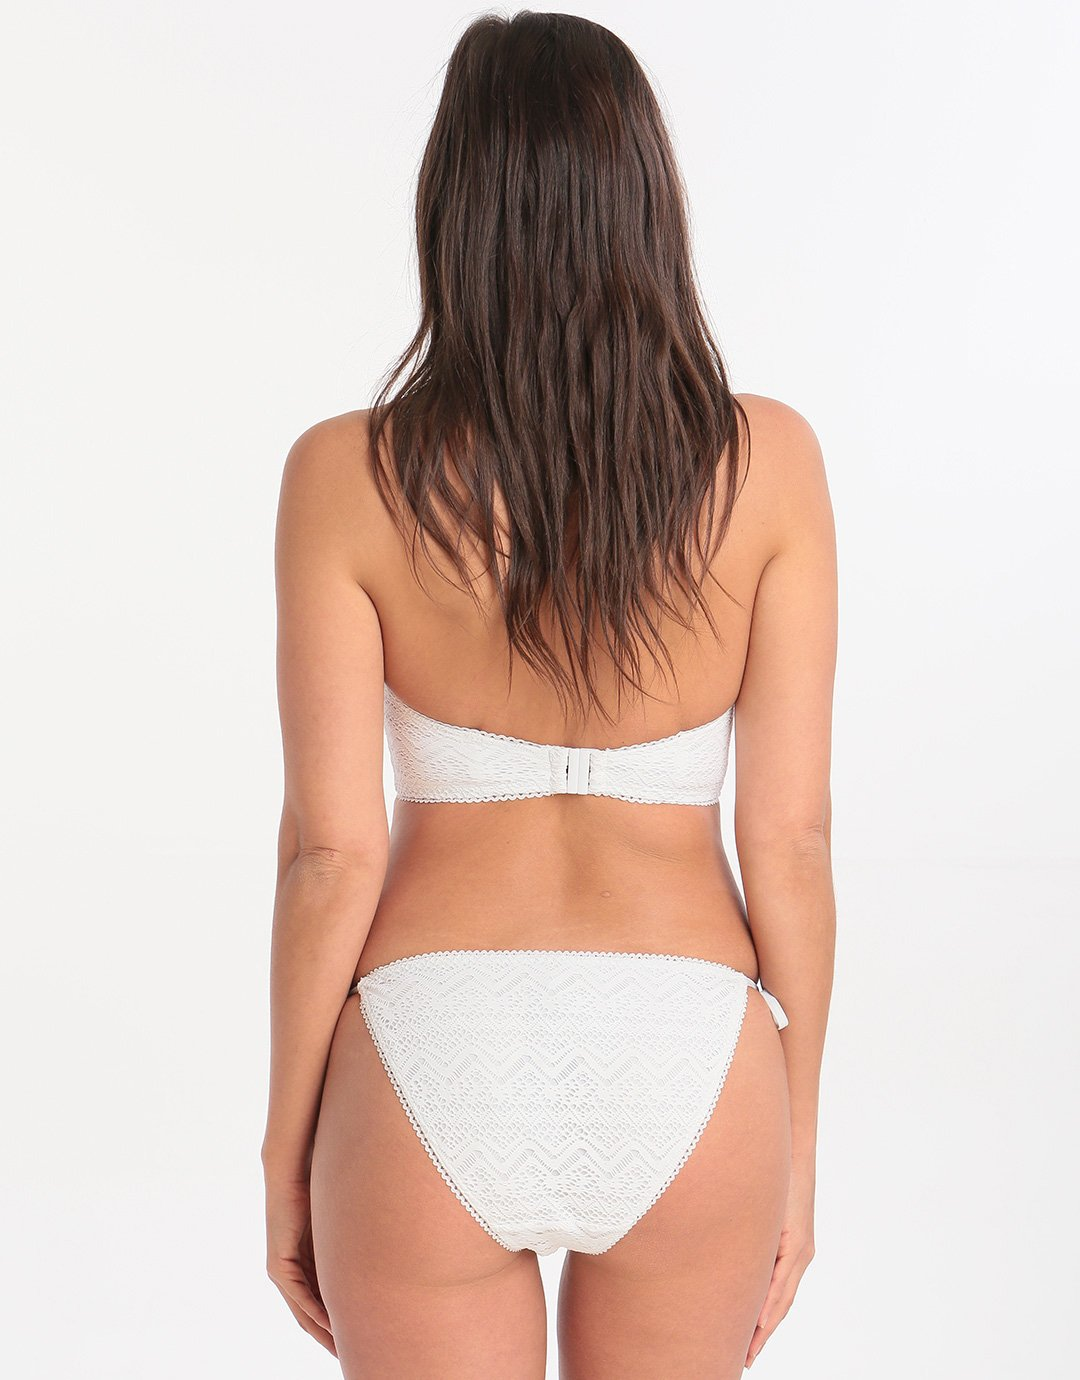 Lepel London White Sands Tie Side Pant - Cream